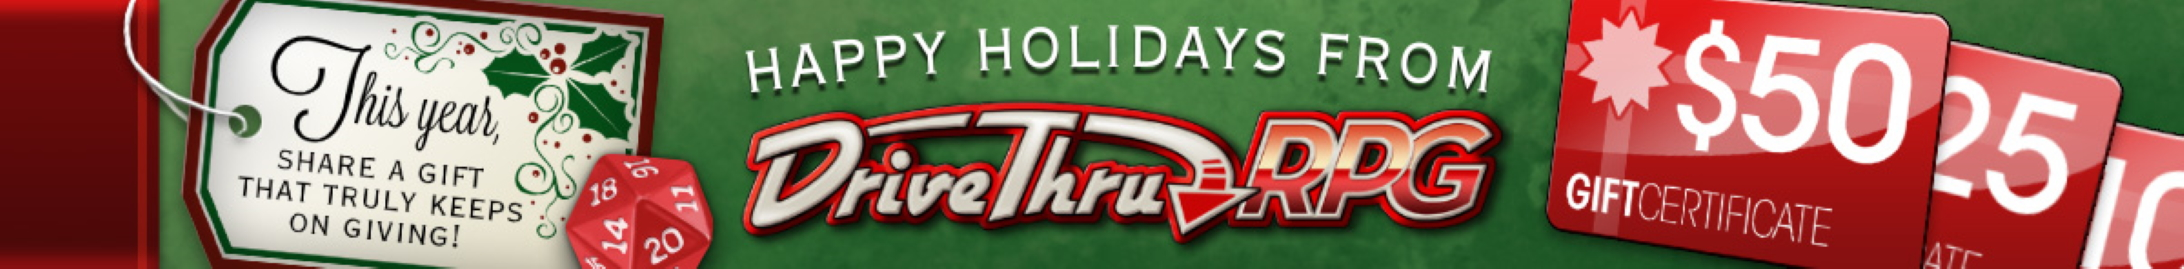 Happy holidays! Gift certificates are available @ DriveThruRPG.com